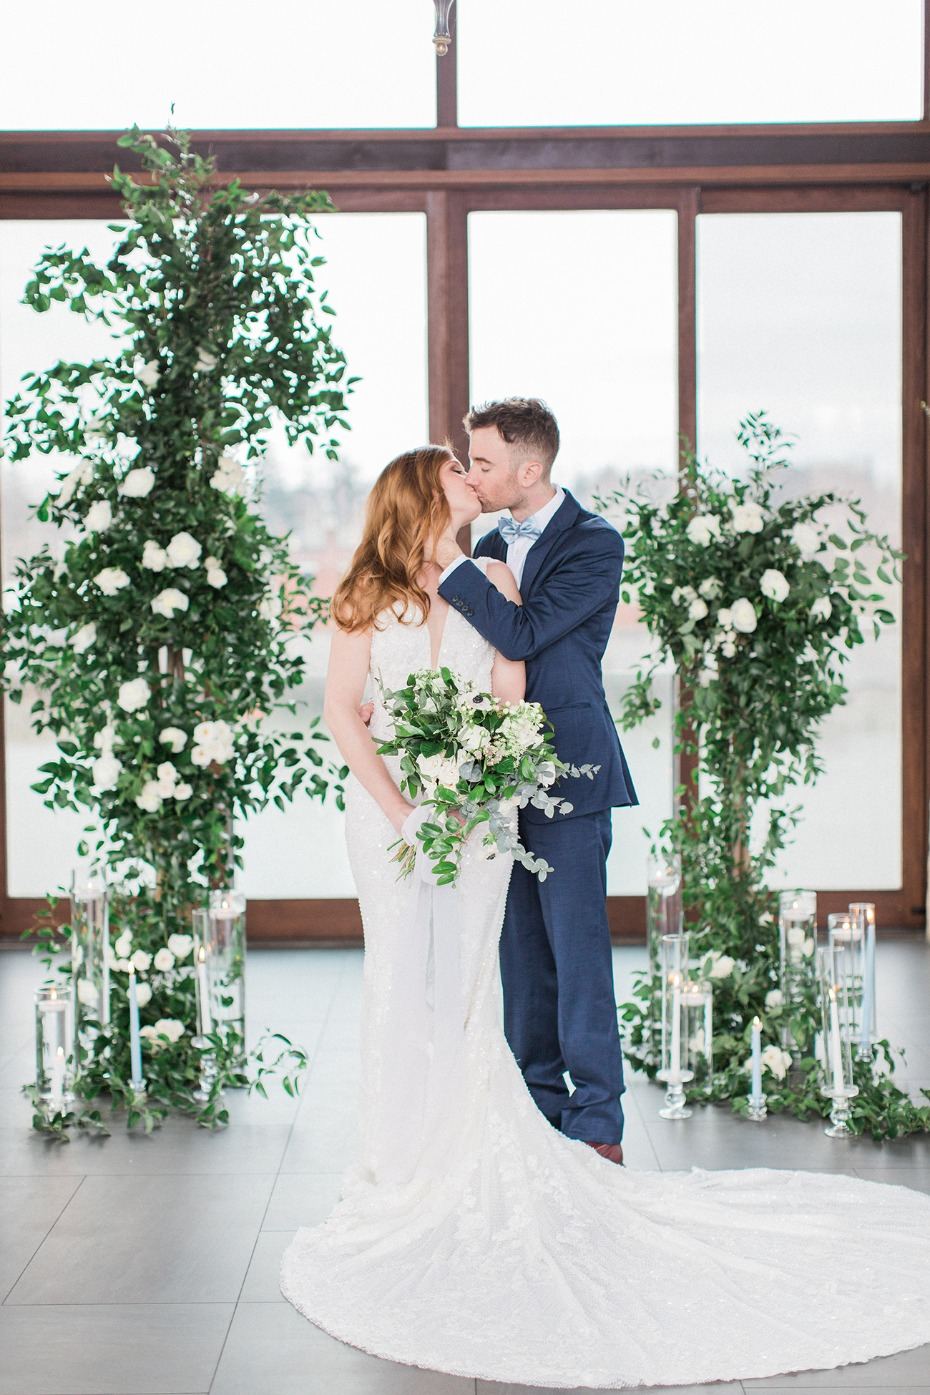 romantic wedding kiss with asymmetrical floral backdrop